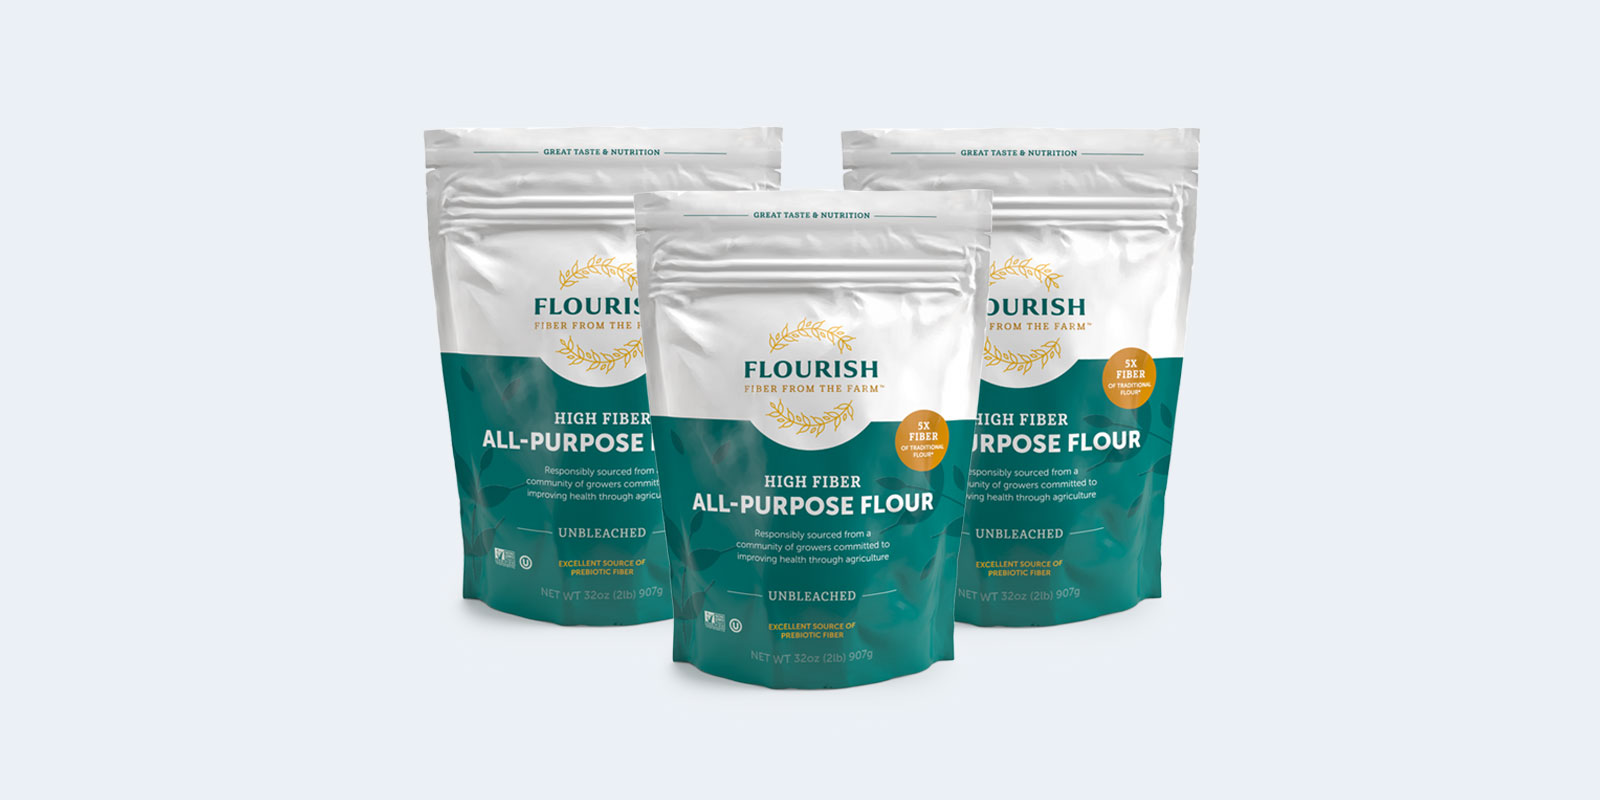 Flourish packaging